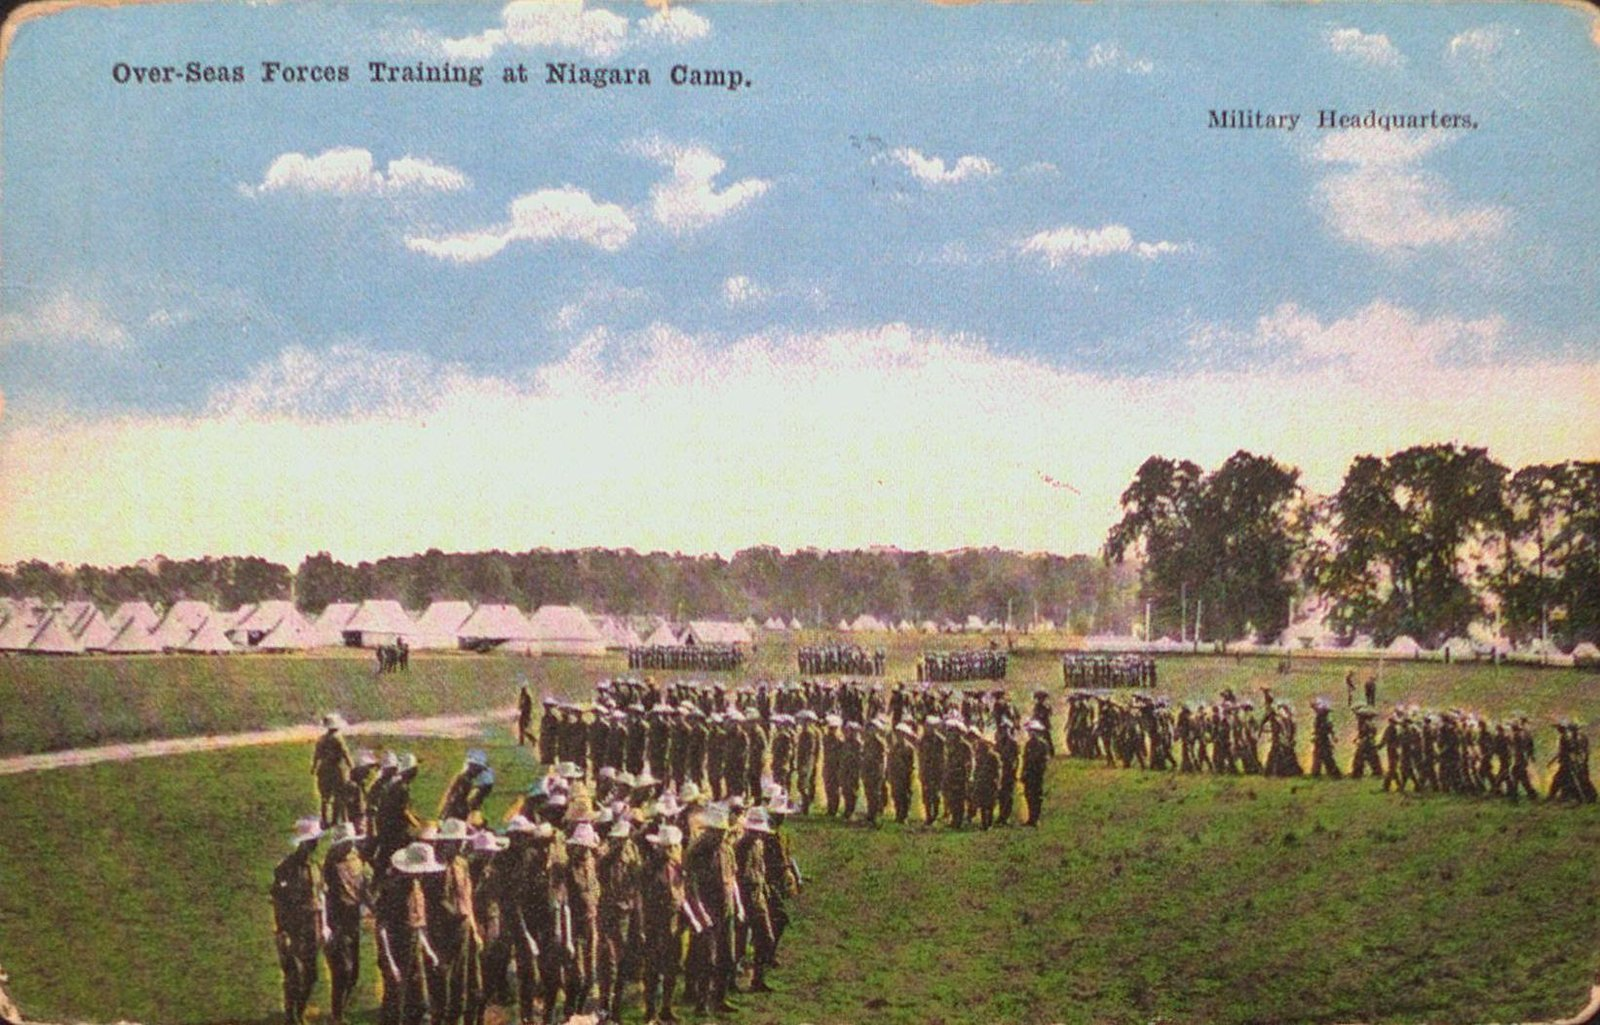 Over-Seas Forces Training at Camp Niagara